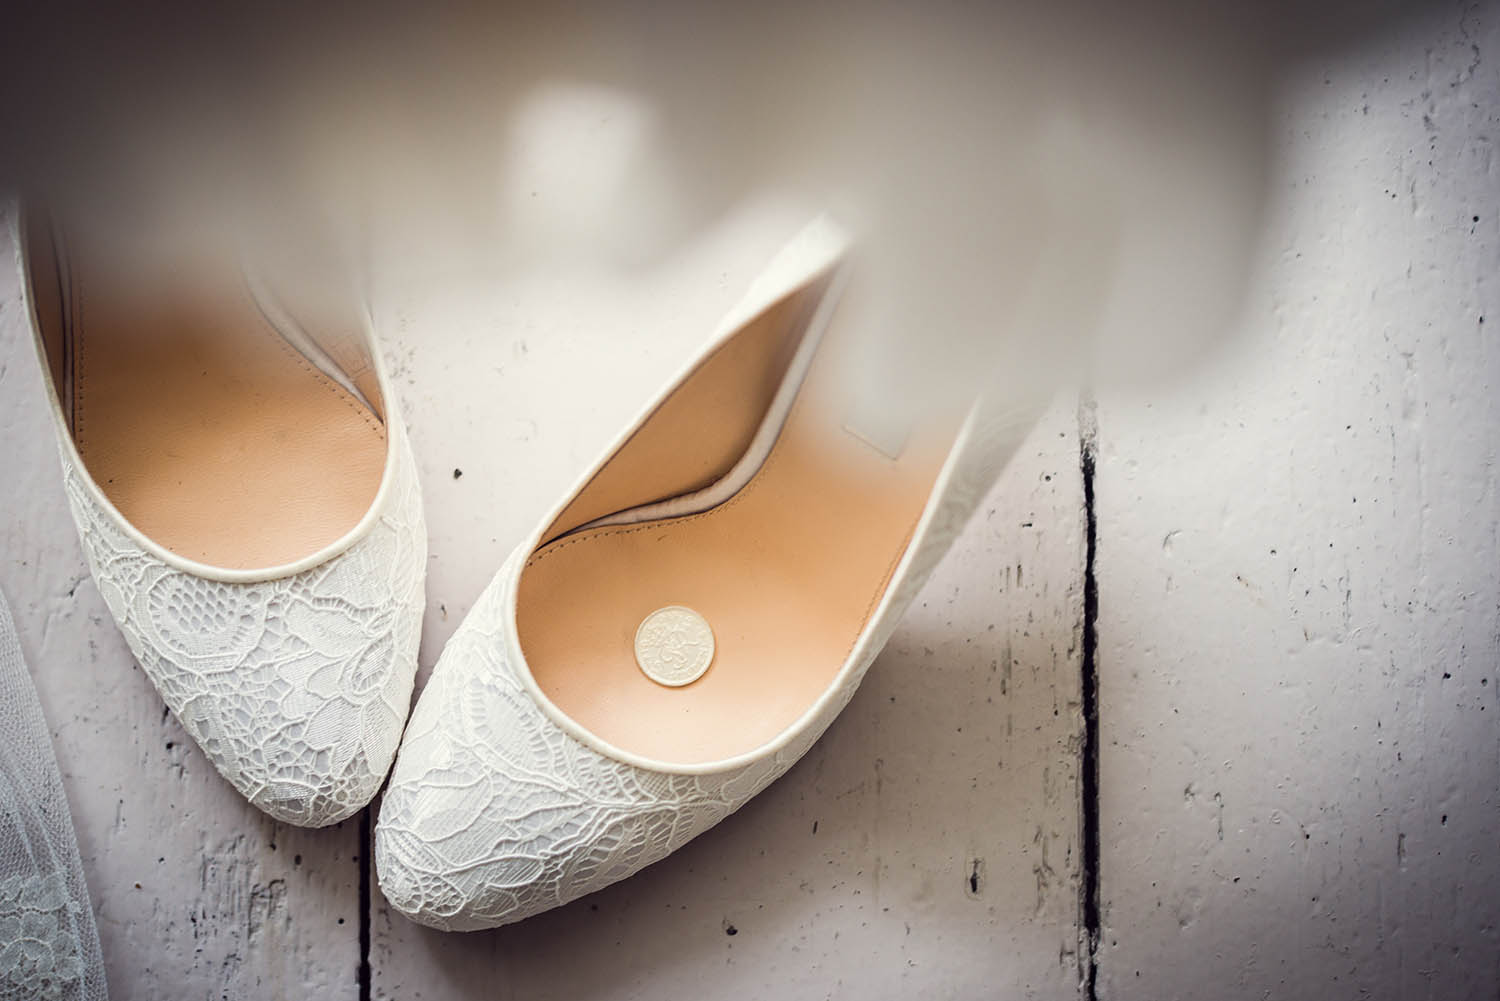 Wedding day shoes. Little details make great photographs.